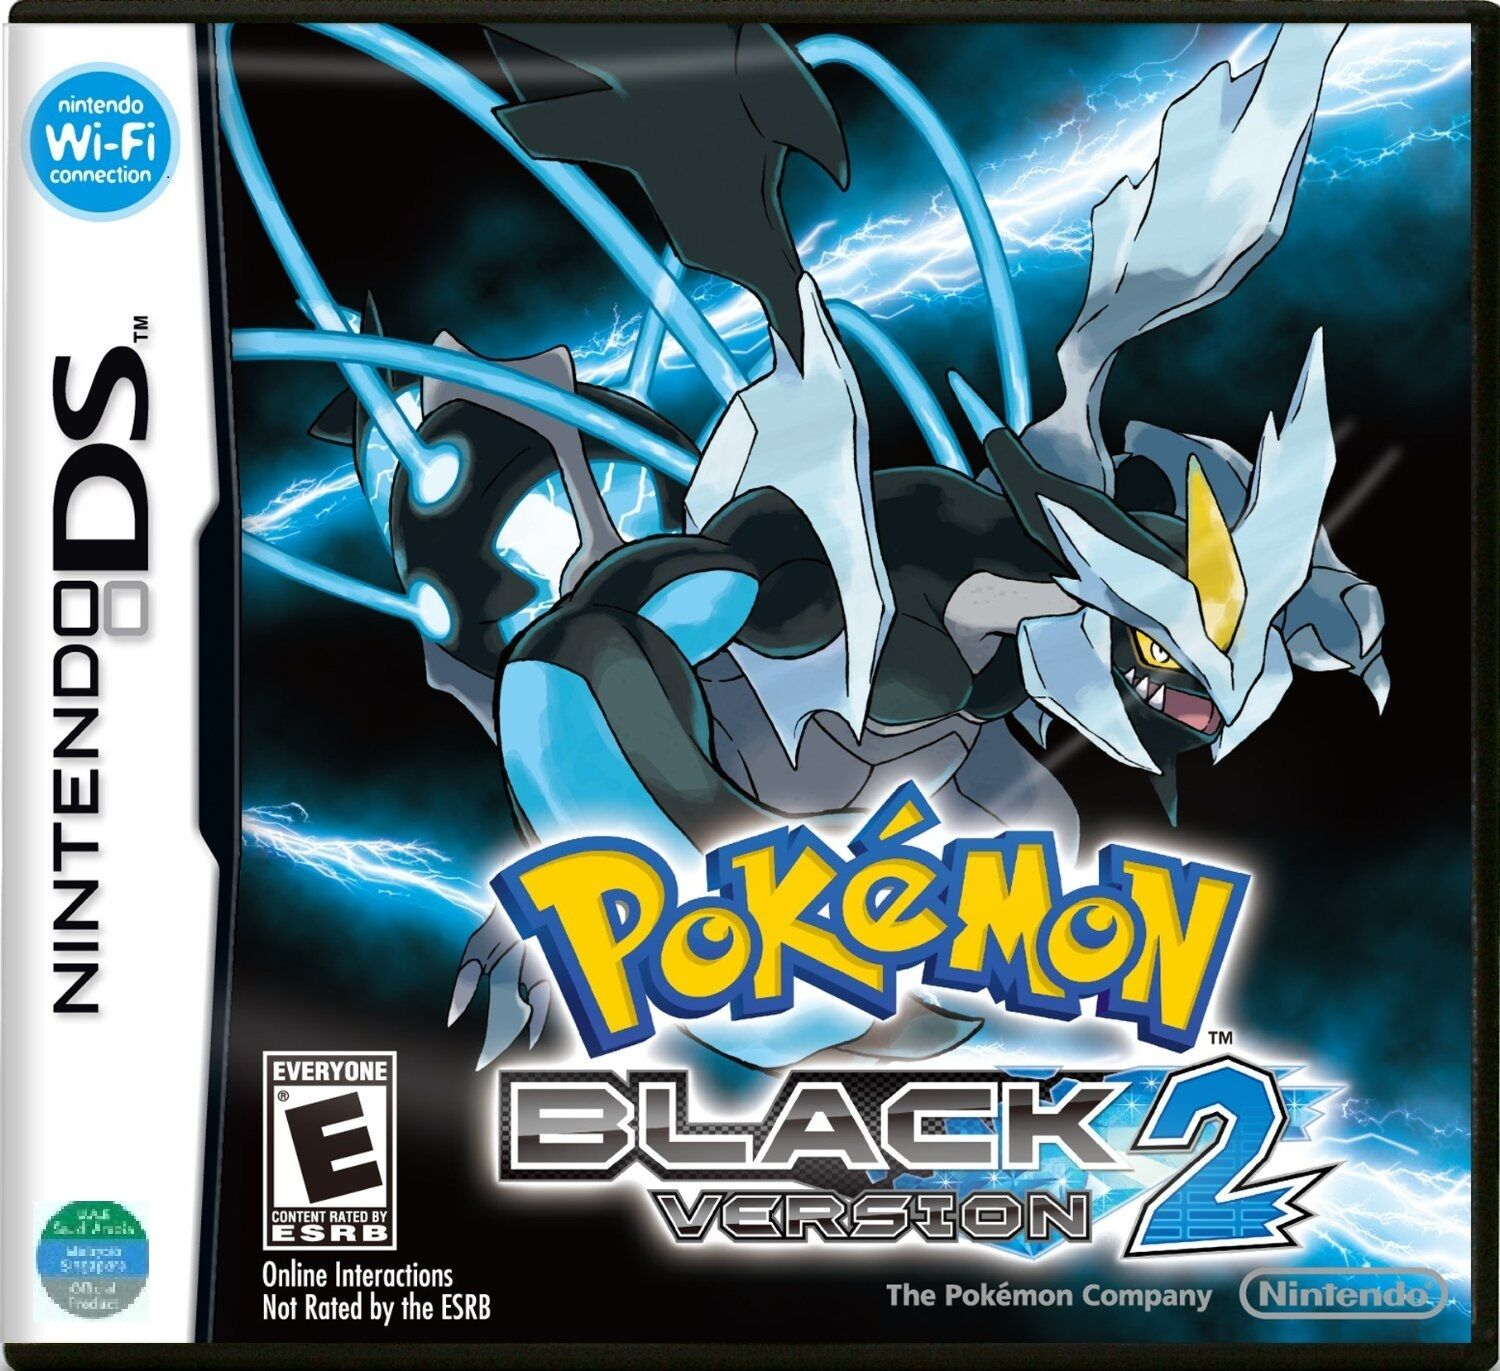 Forum on this topic: How to Make a Balanced Pokémon Black , how-to-make-a-balanced-pok-mon-black/